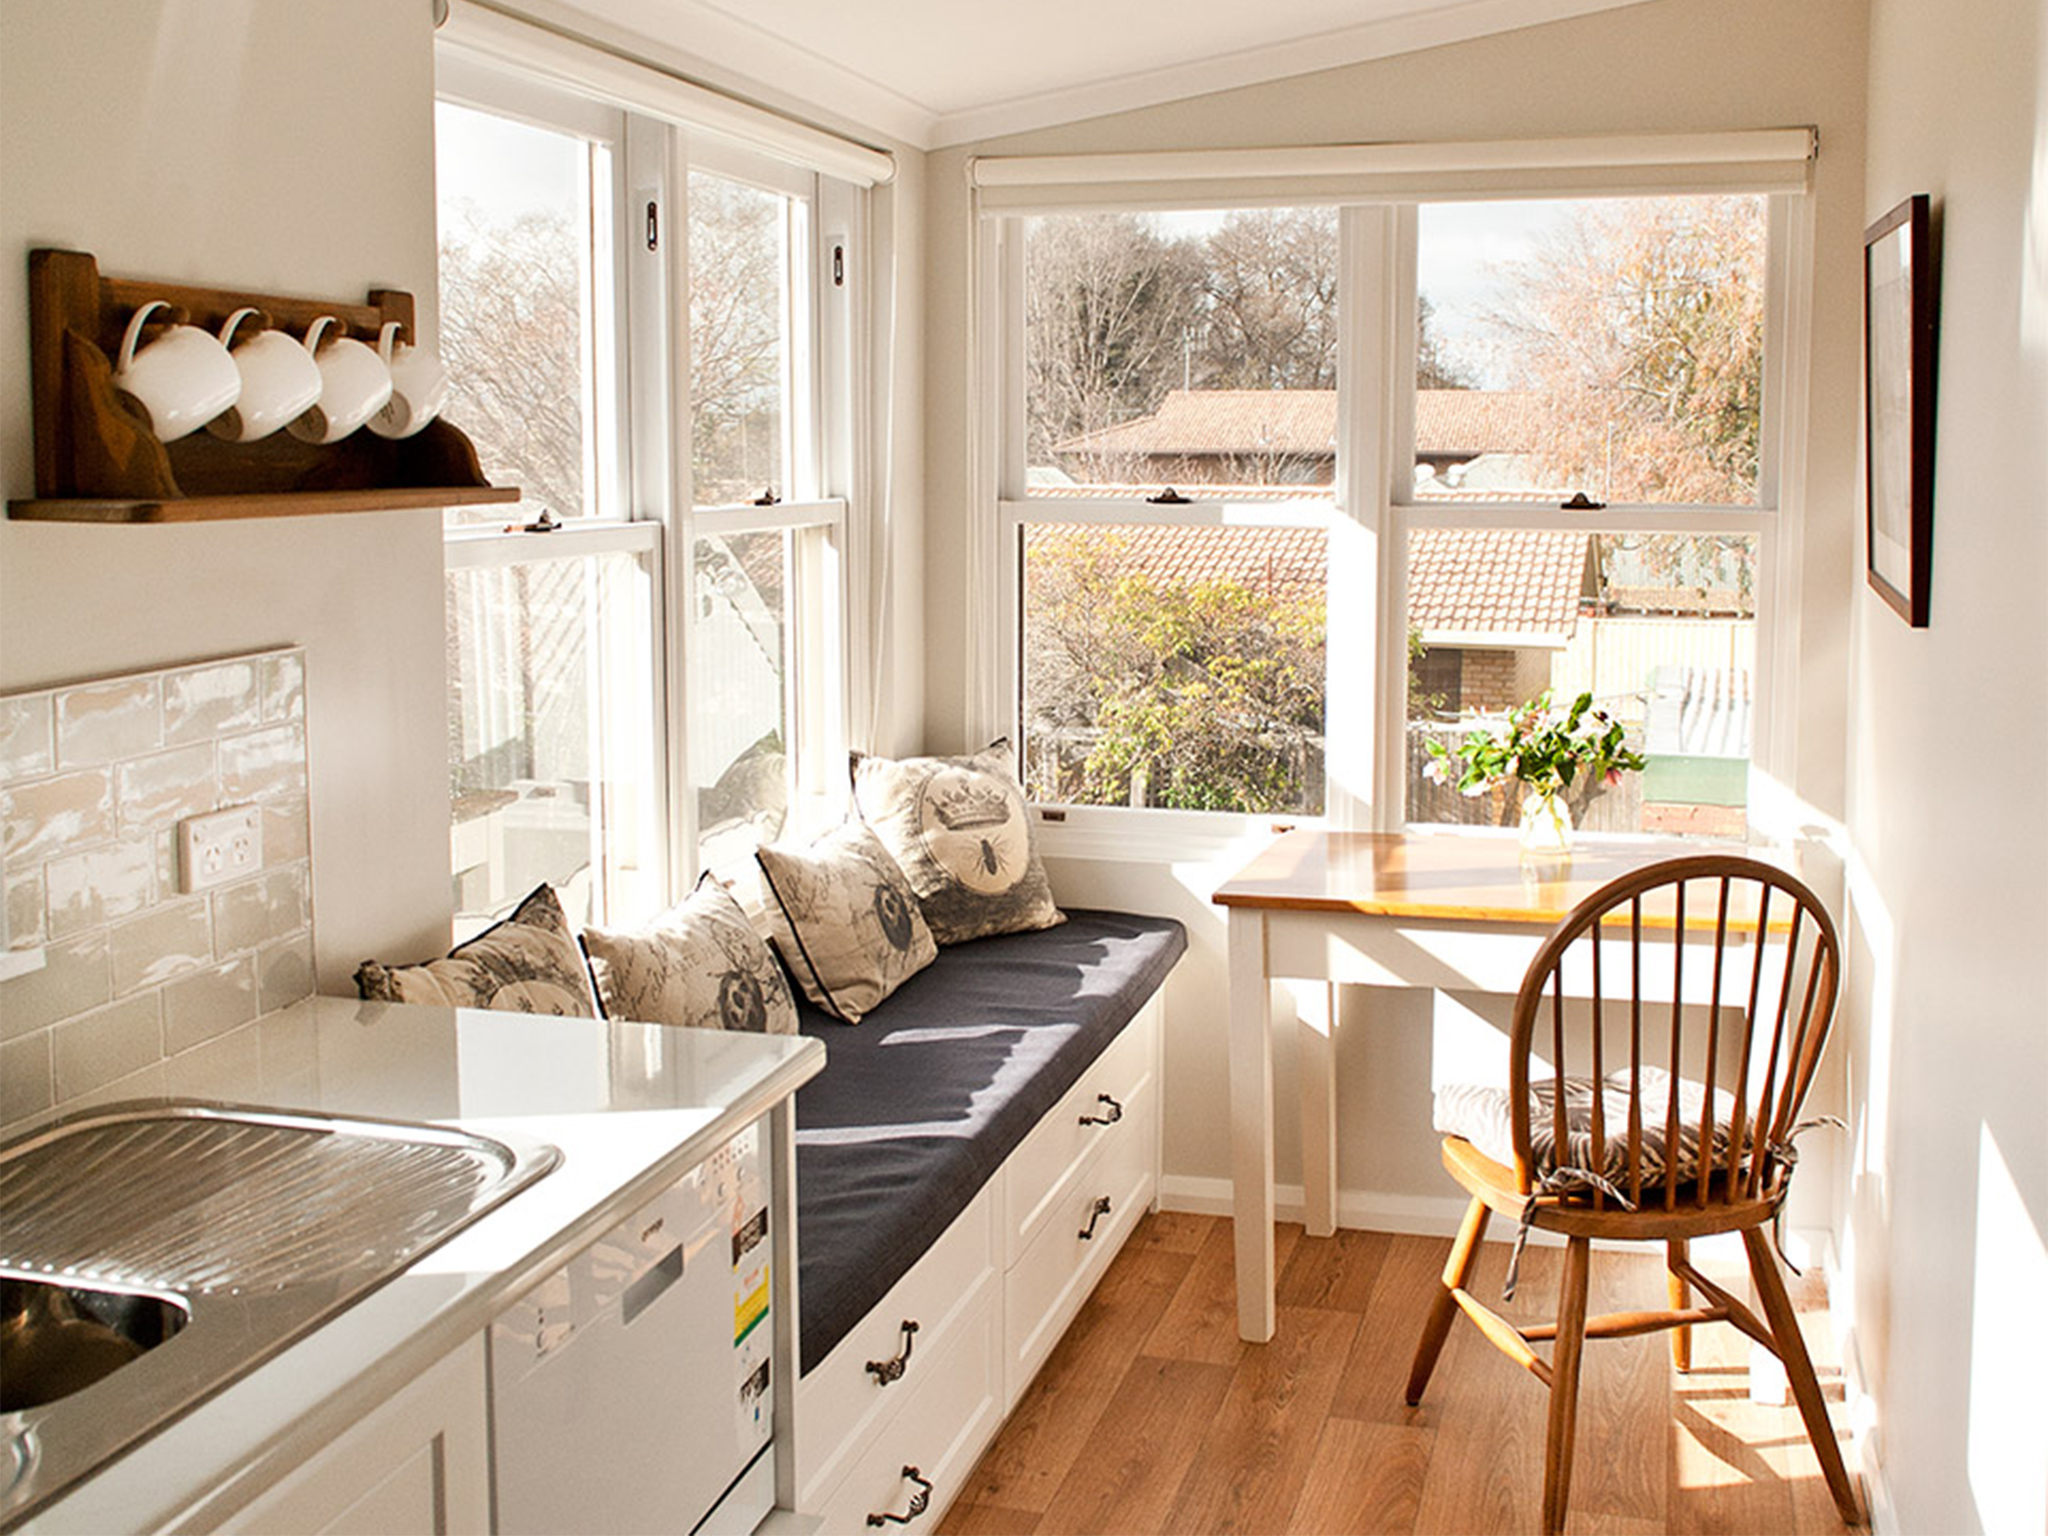 The comfortable seating area of a sunlit kitchen and dining area